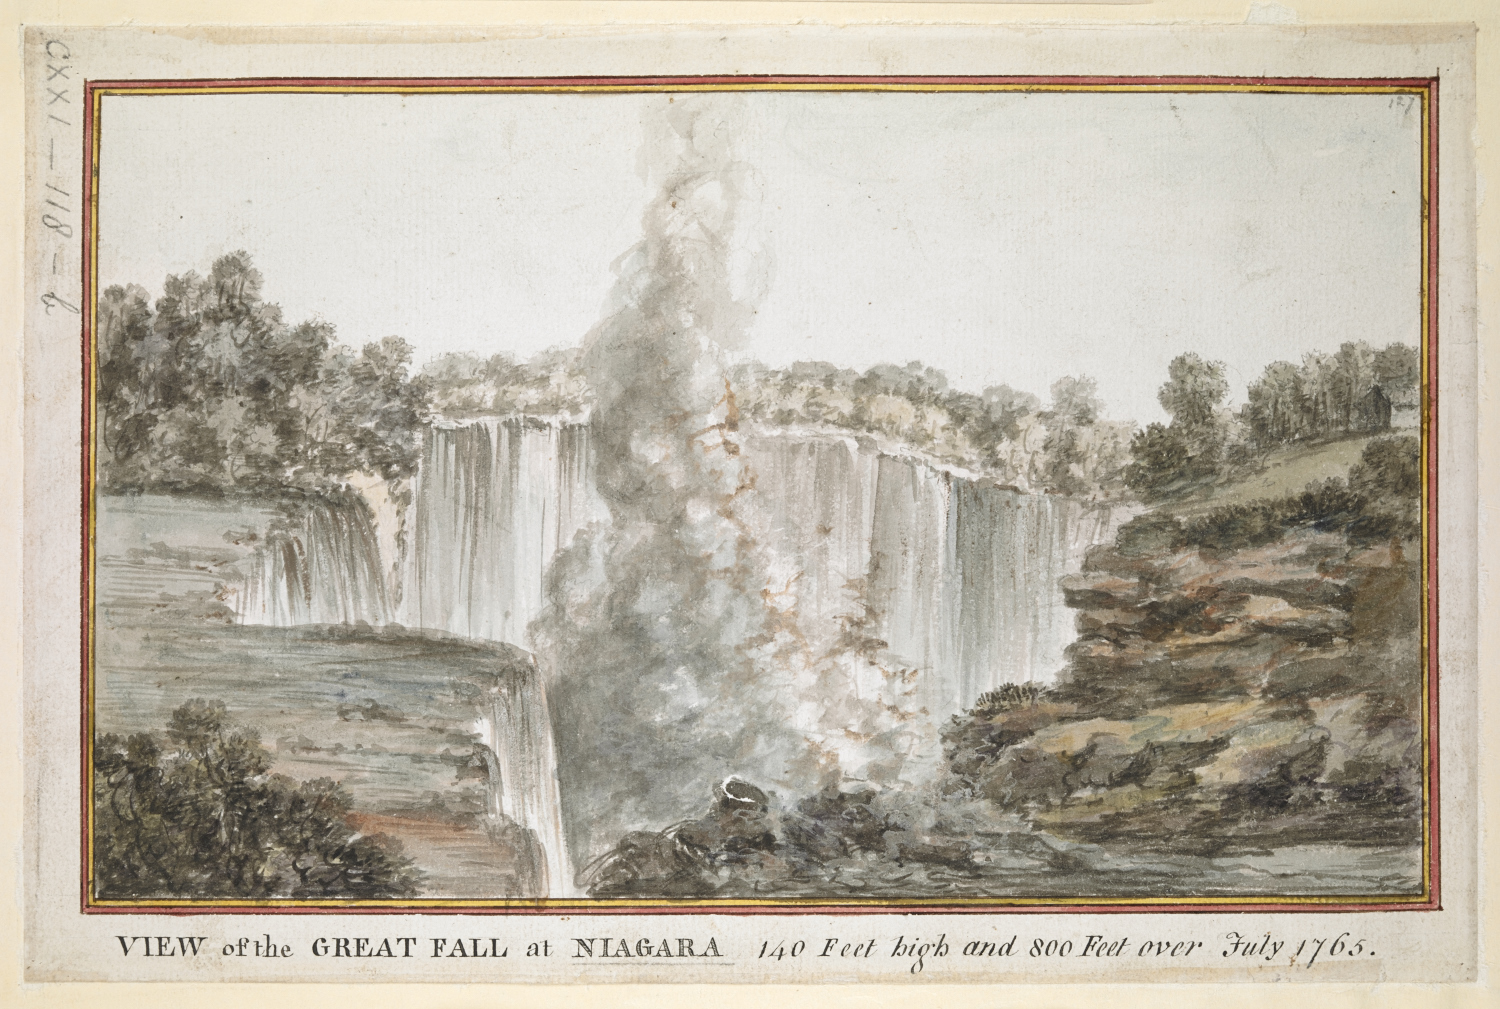 Lord Adam Gordon's View of the Great Fall at Niagara